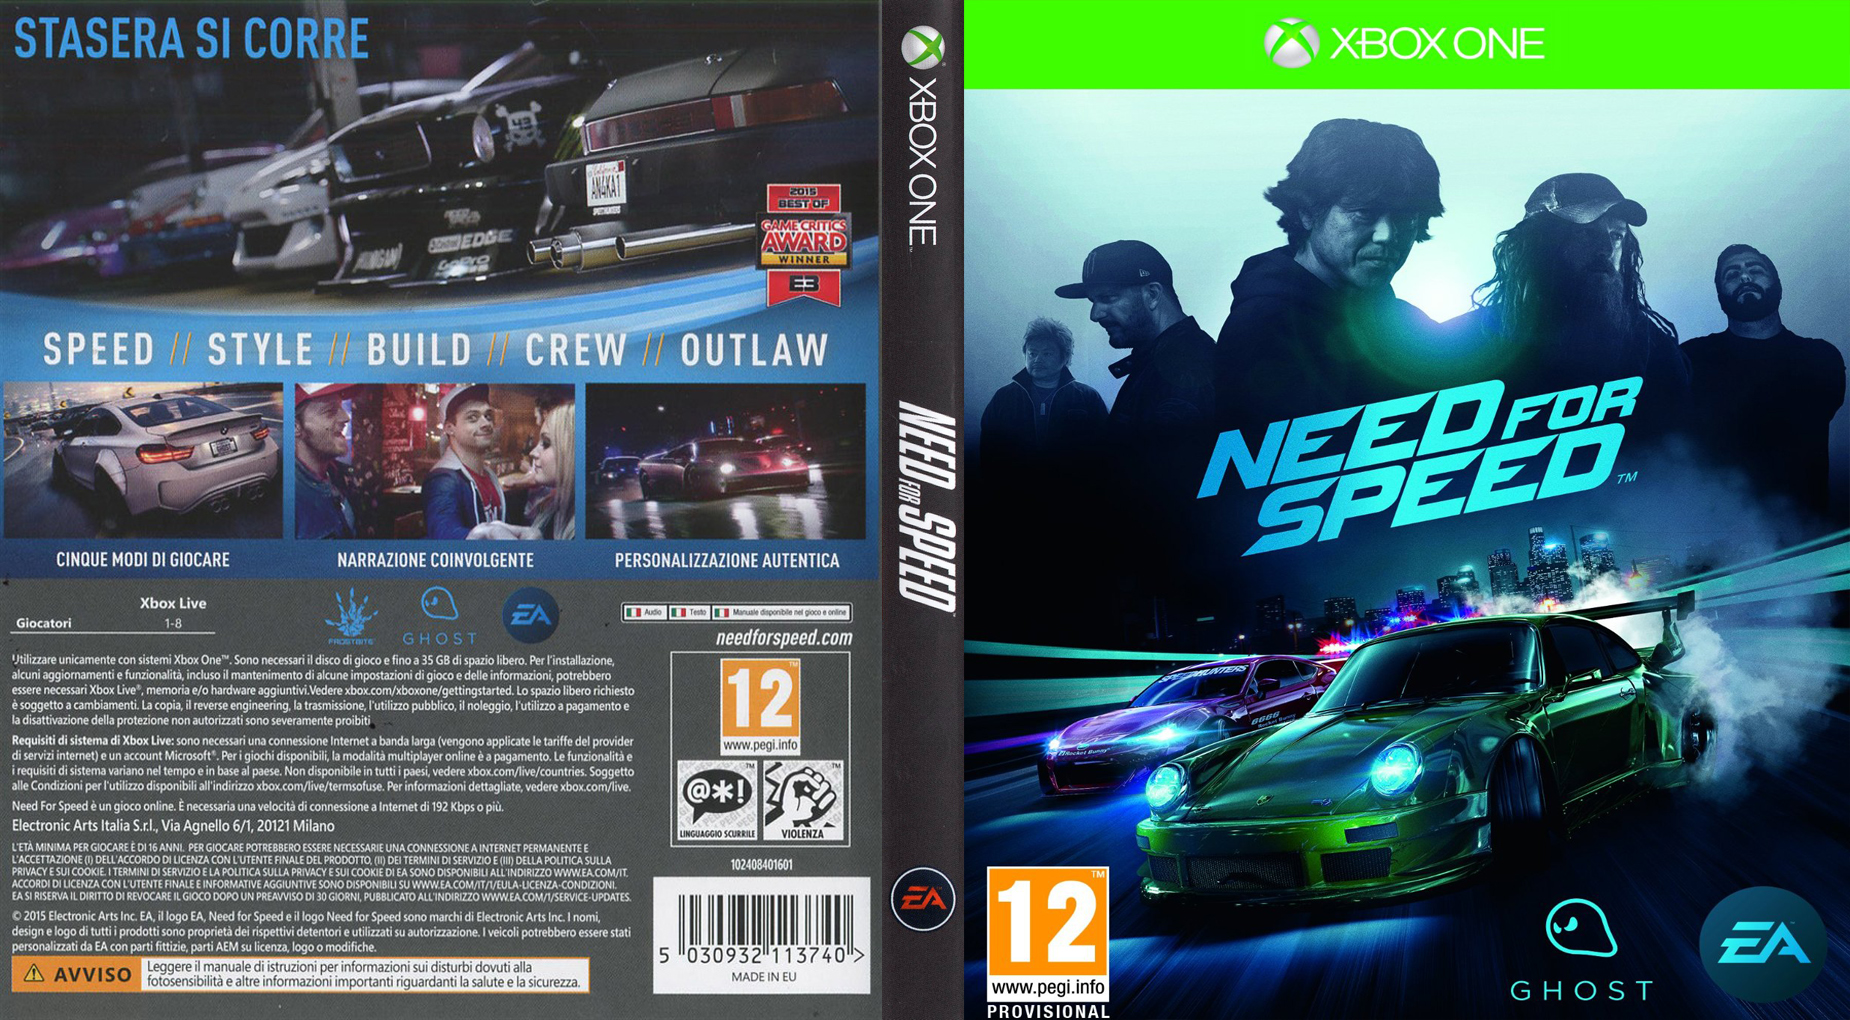 Need for speed: most wanted black edition pc game download